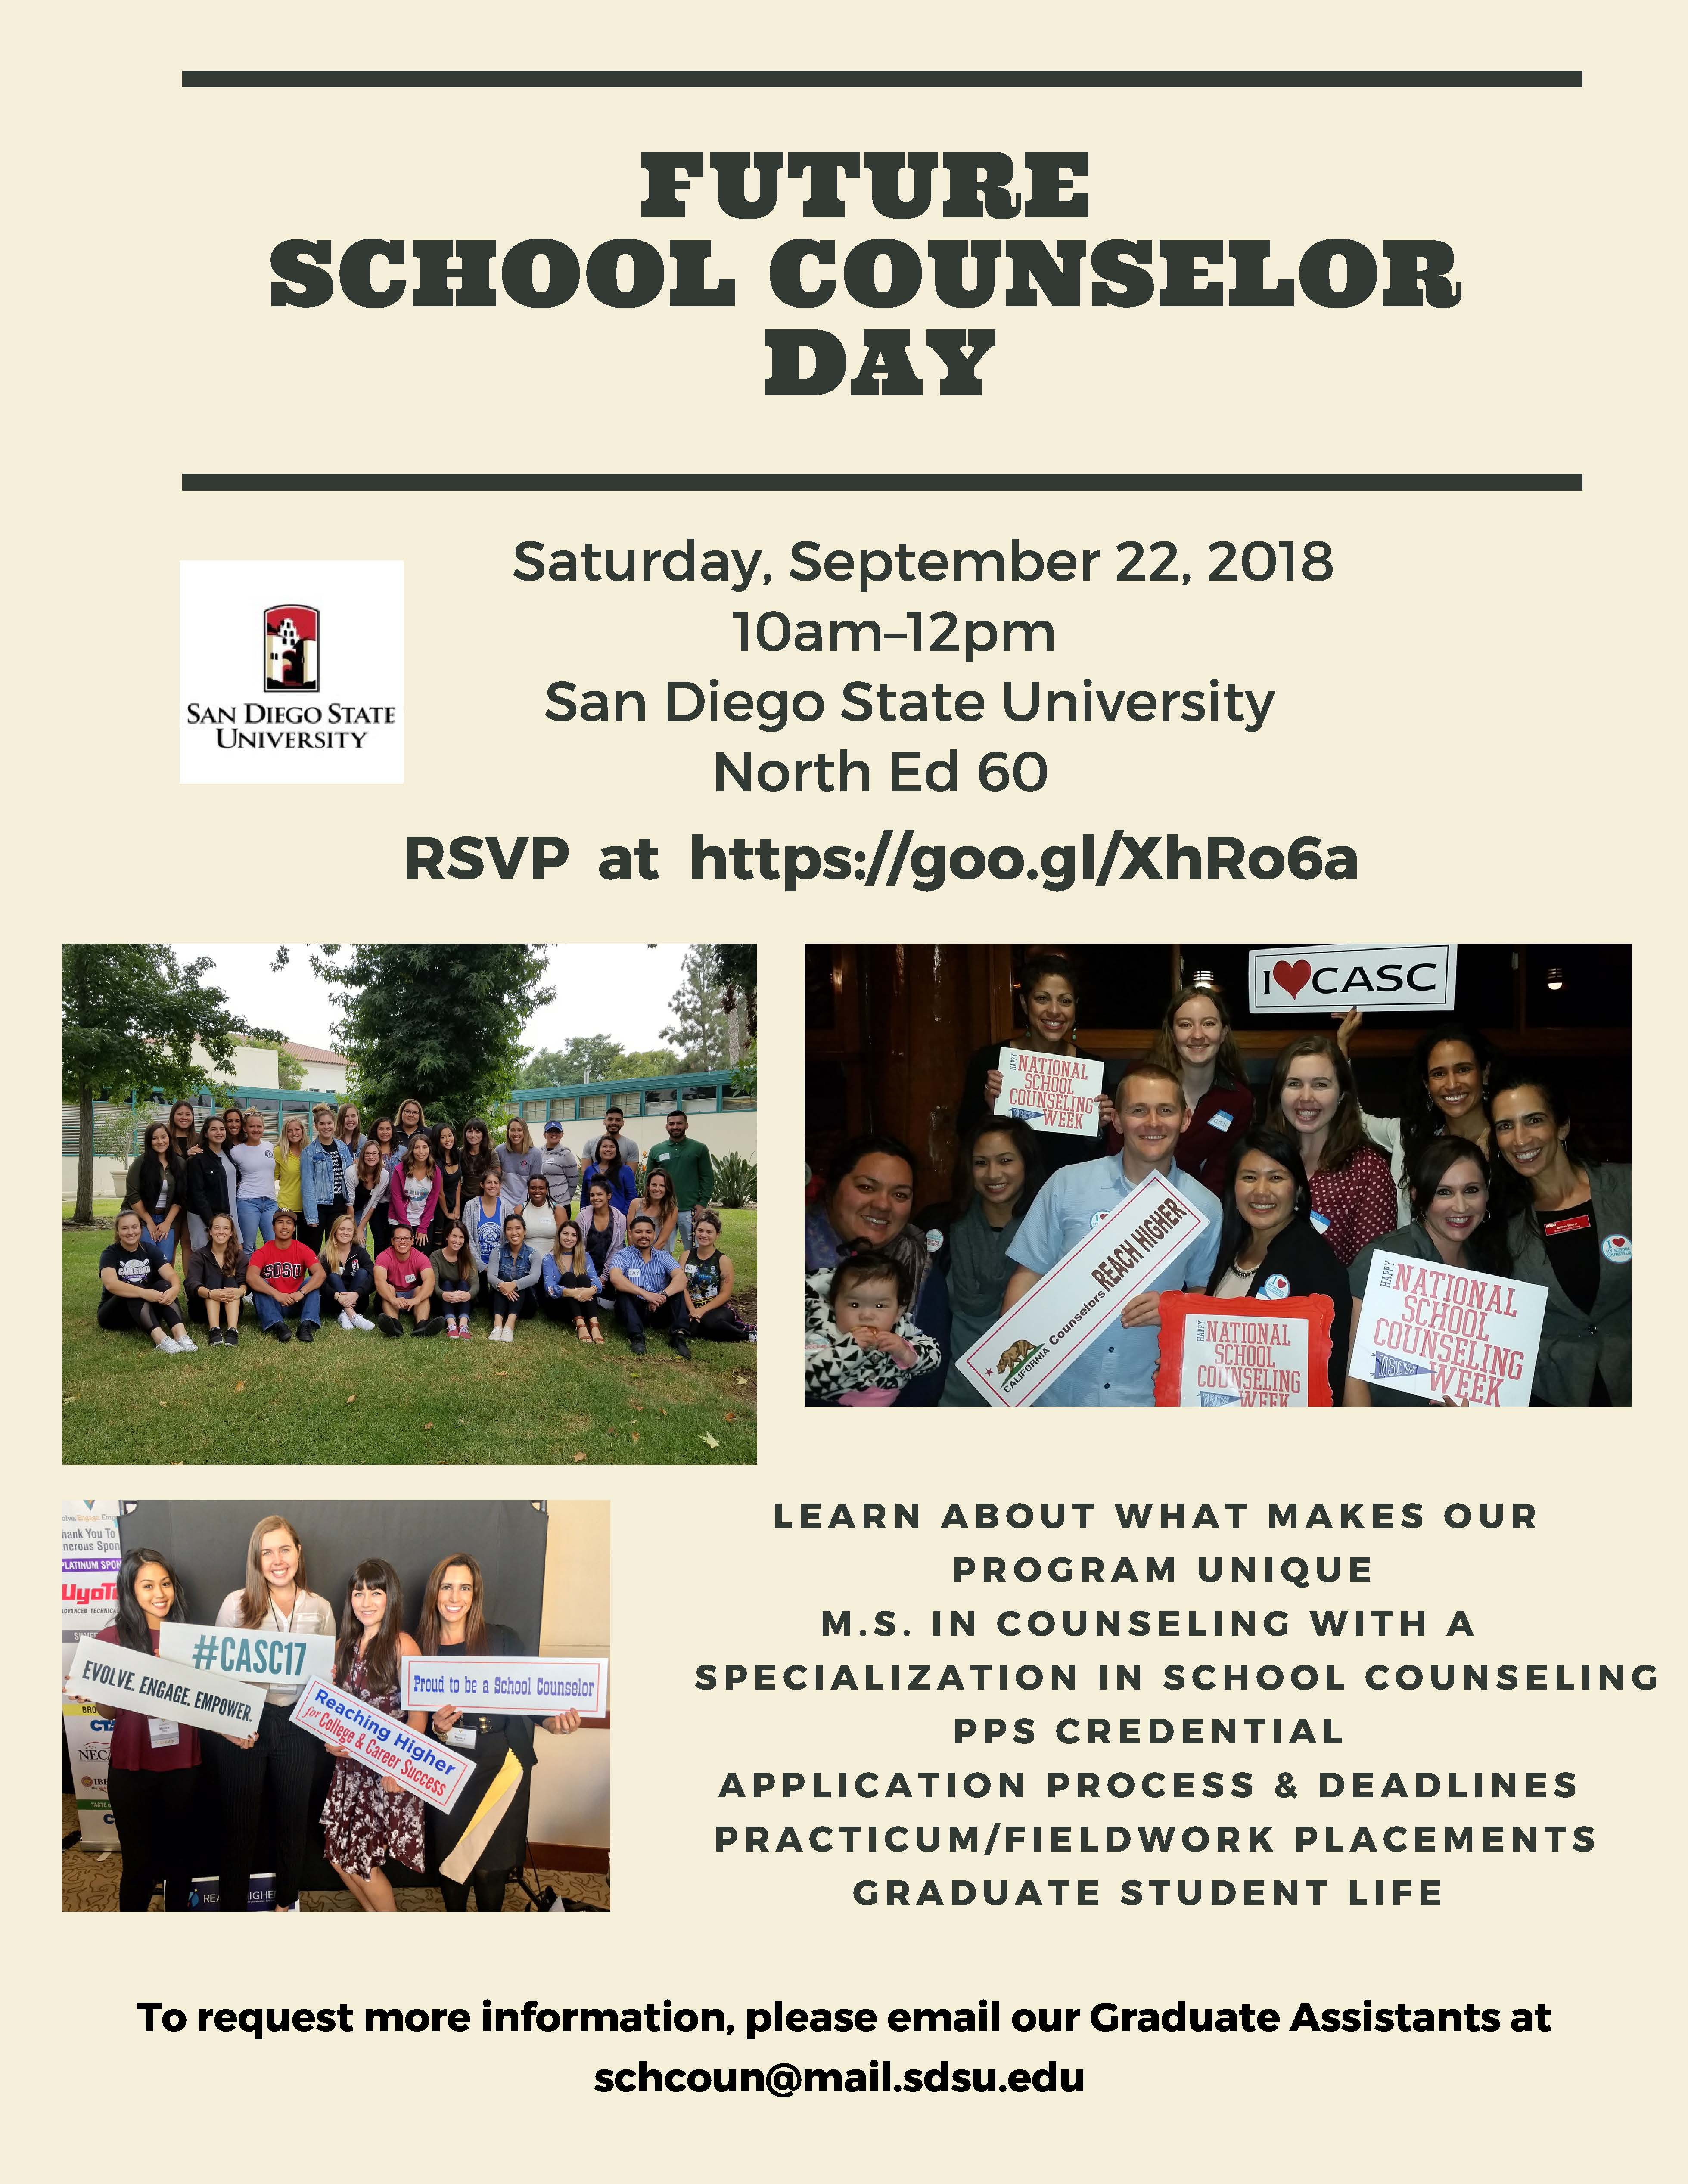 School Counseling Future School Counselor Day 2018 Flyer